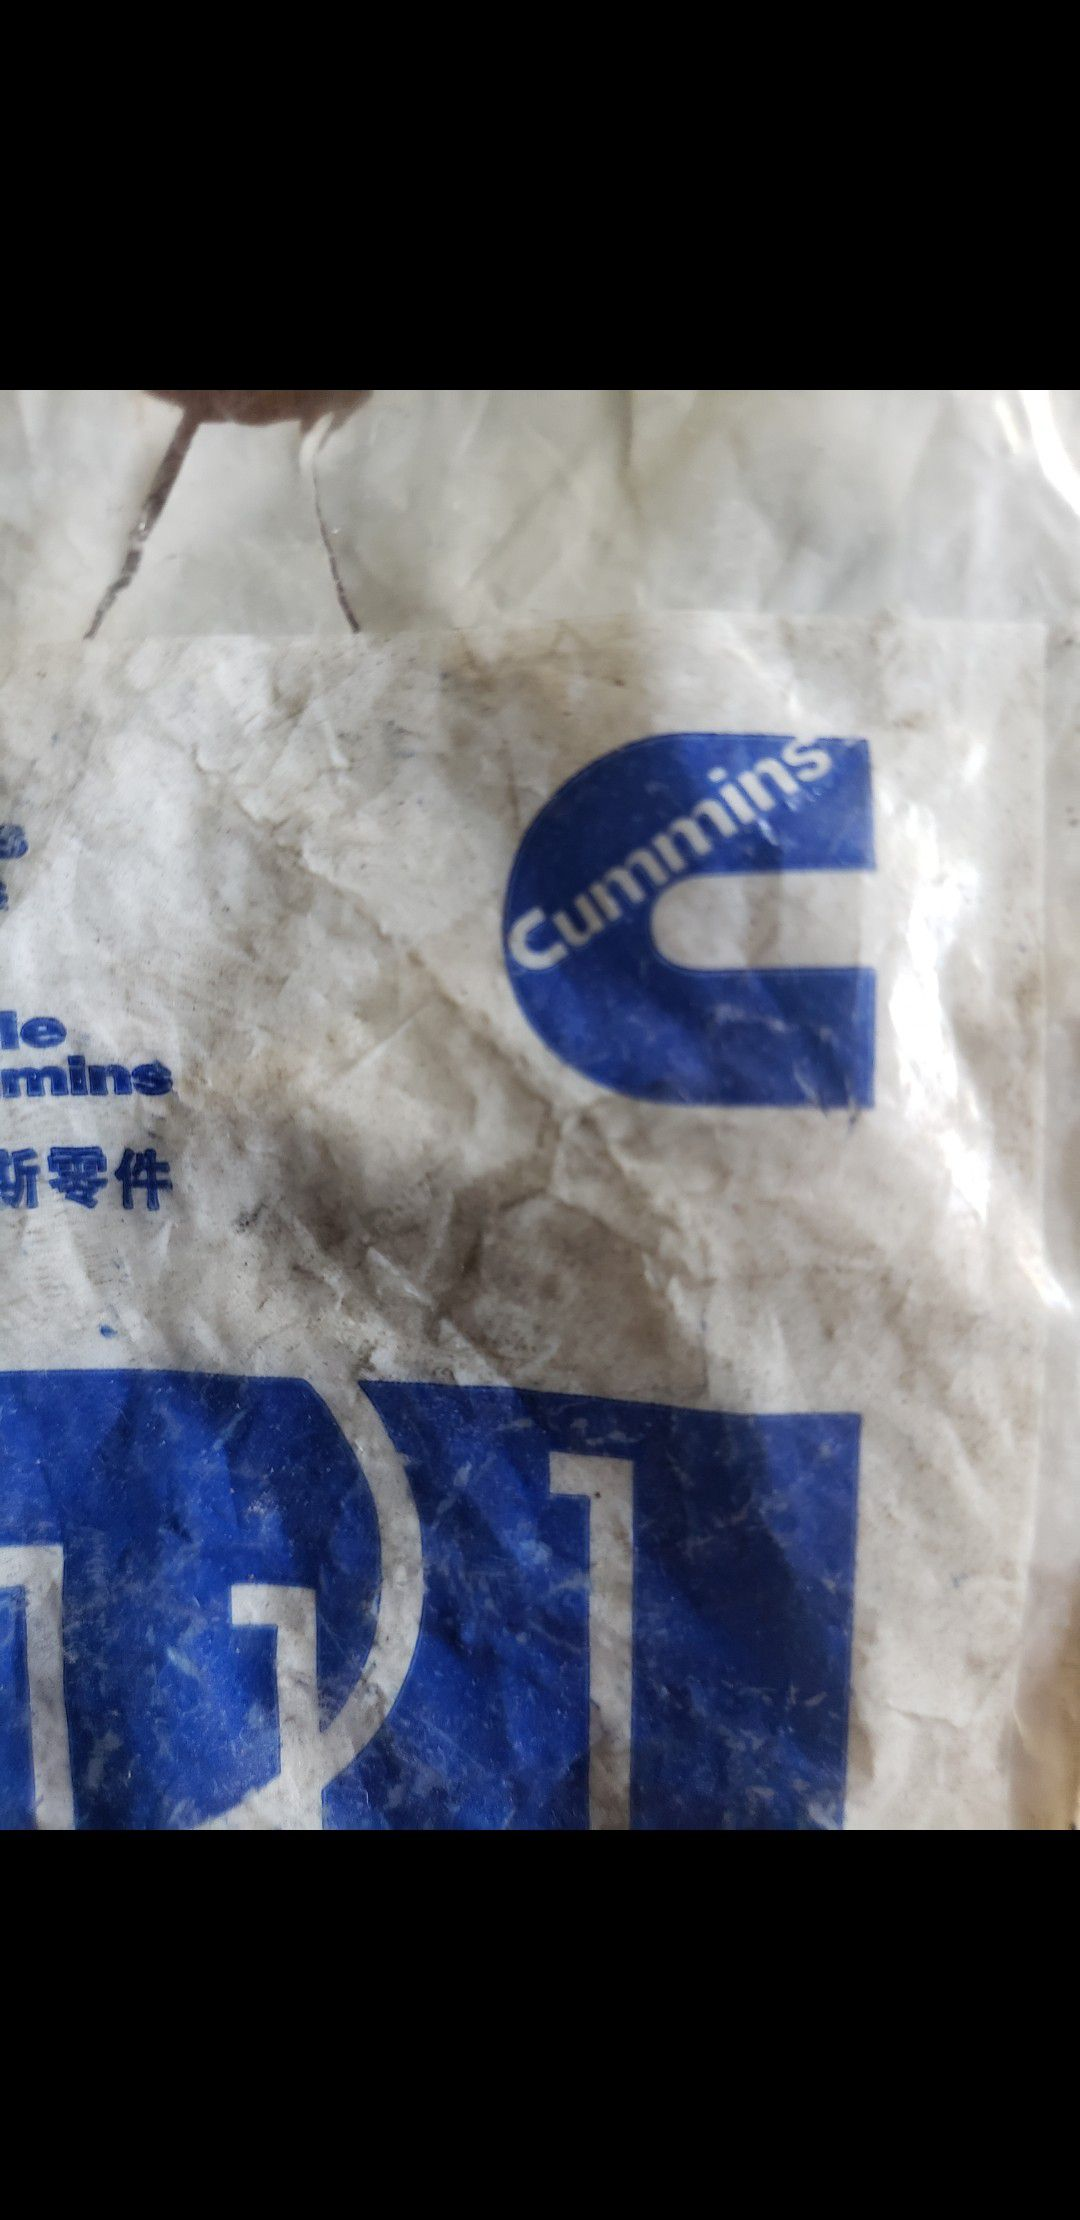 GENUINE CUMMINS PARTS.10 of #3957913.new.never use.